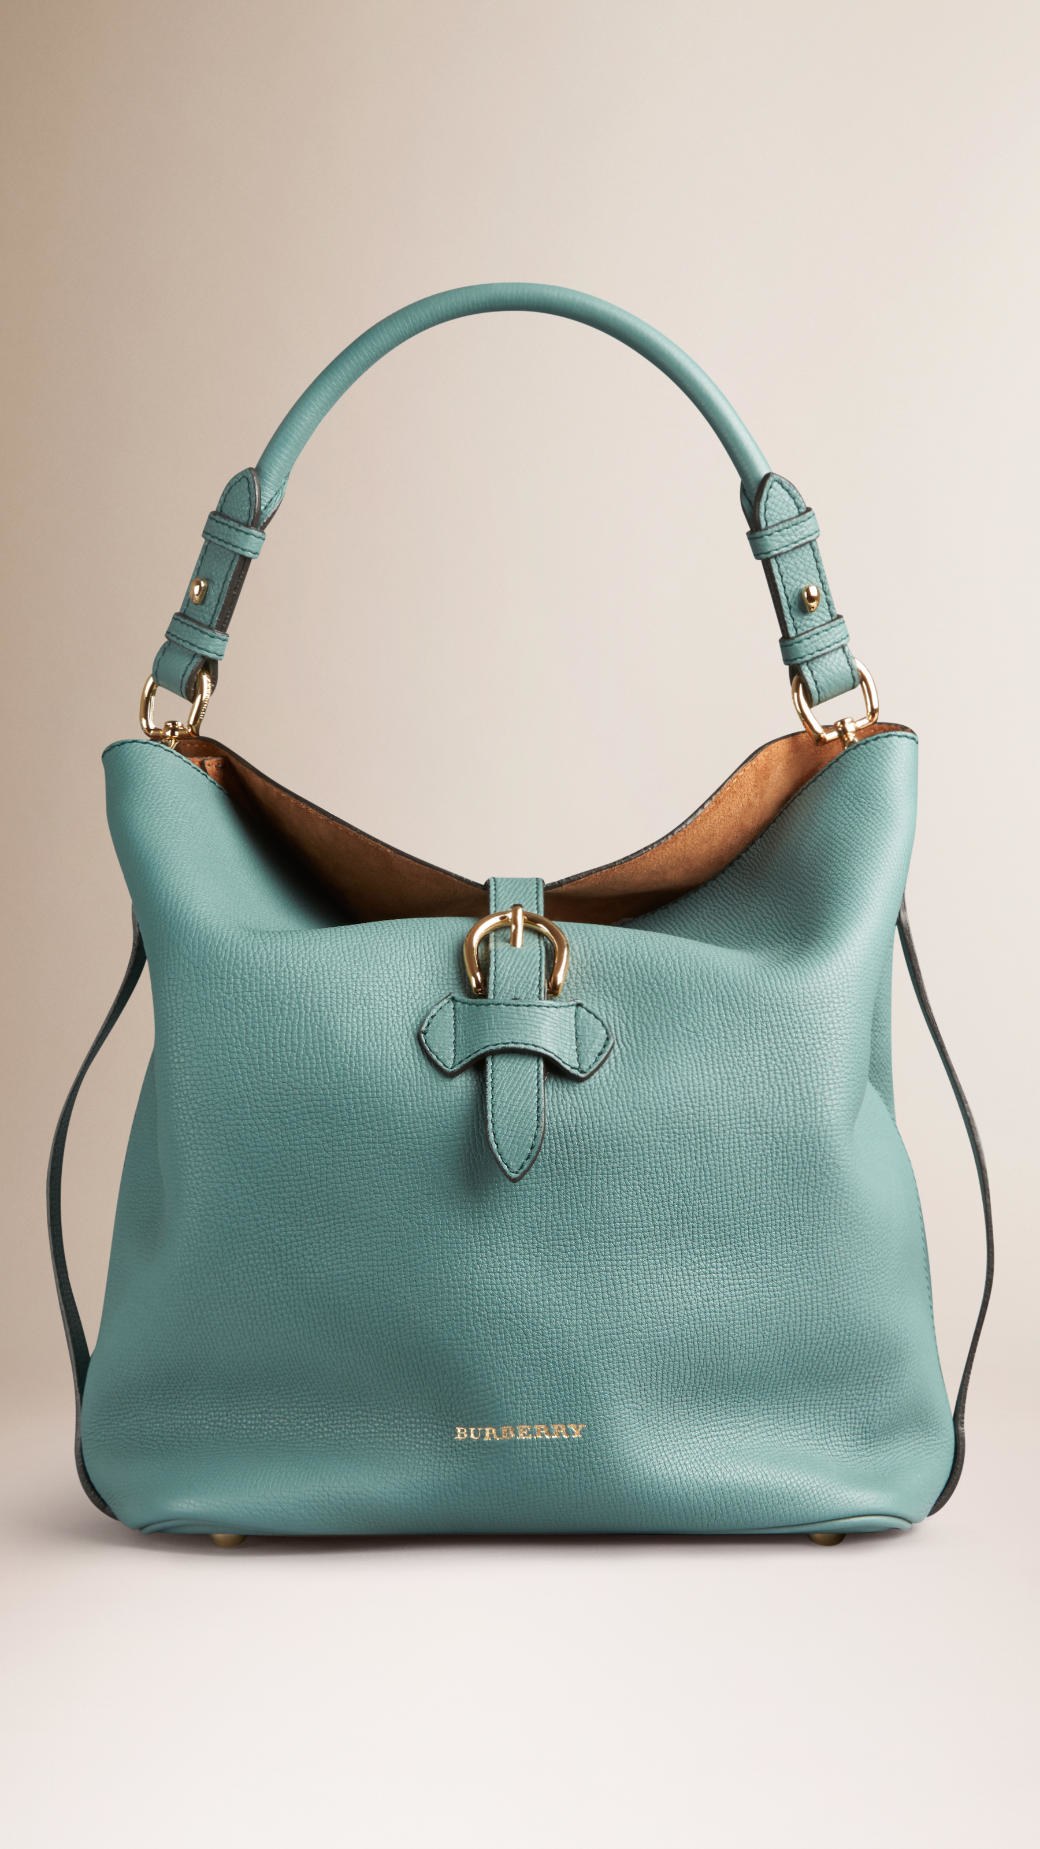 Burberry Medium Buckle Detail Leather Hobo Bag in Green | Lyst